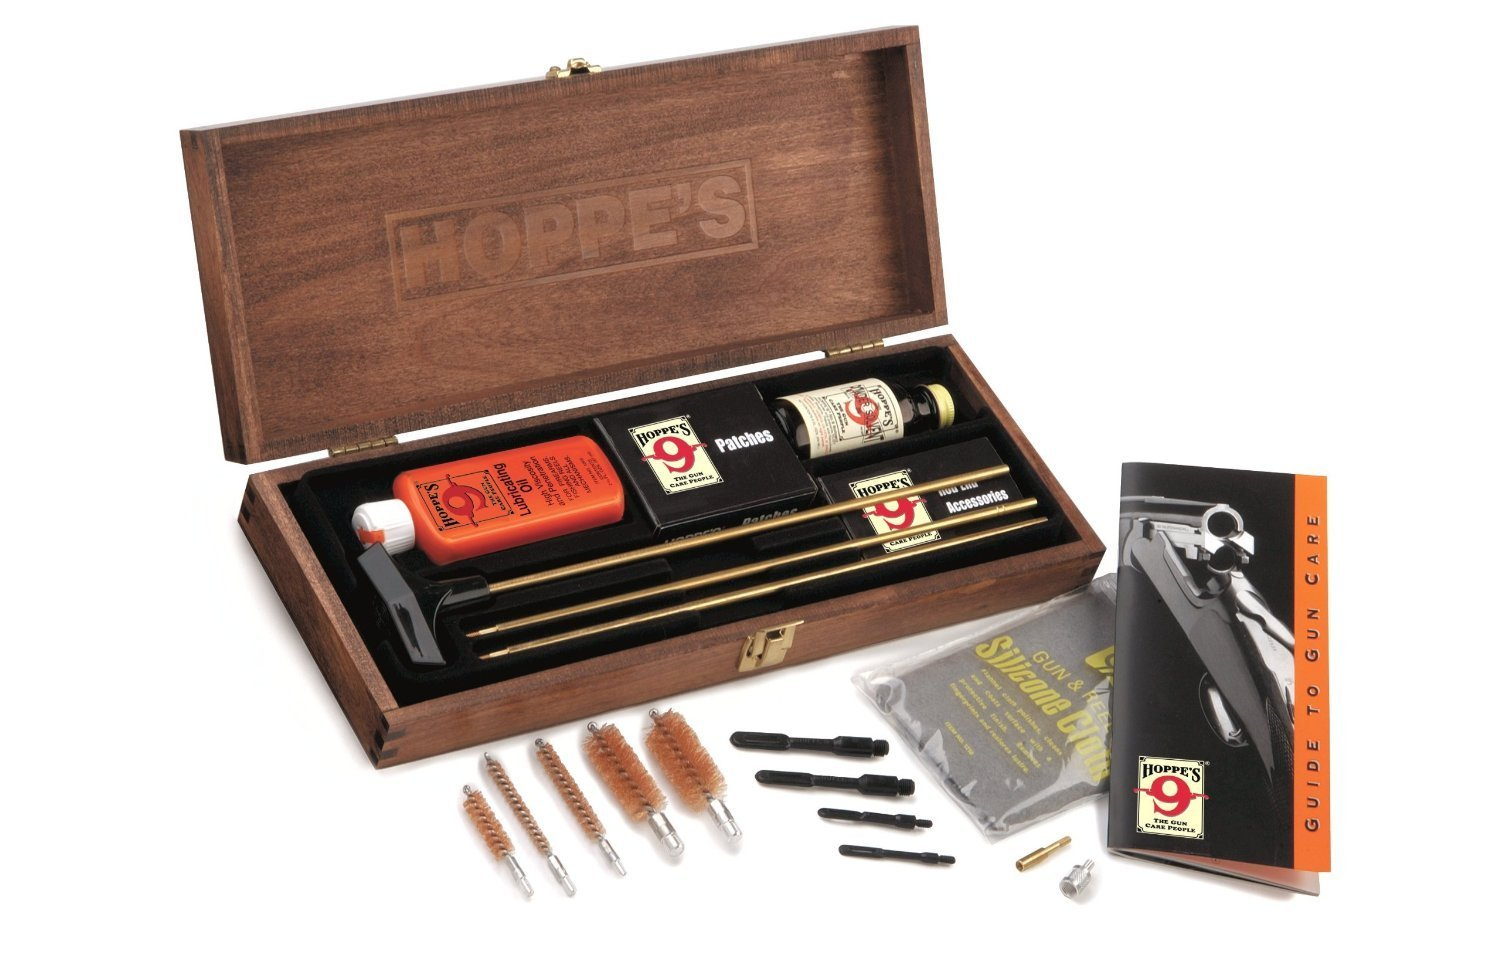 2. Hoppe's No. 9 Deluxe Gun Cleaning Kit